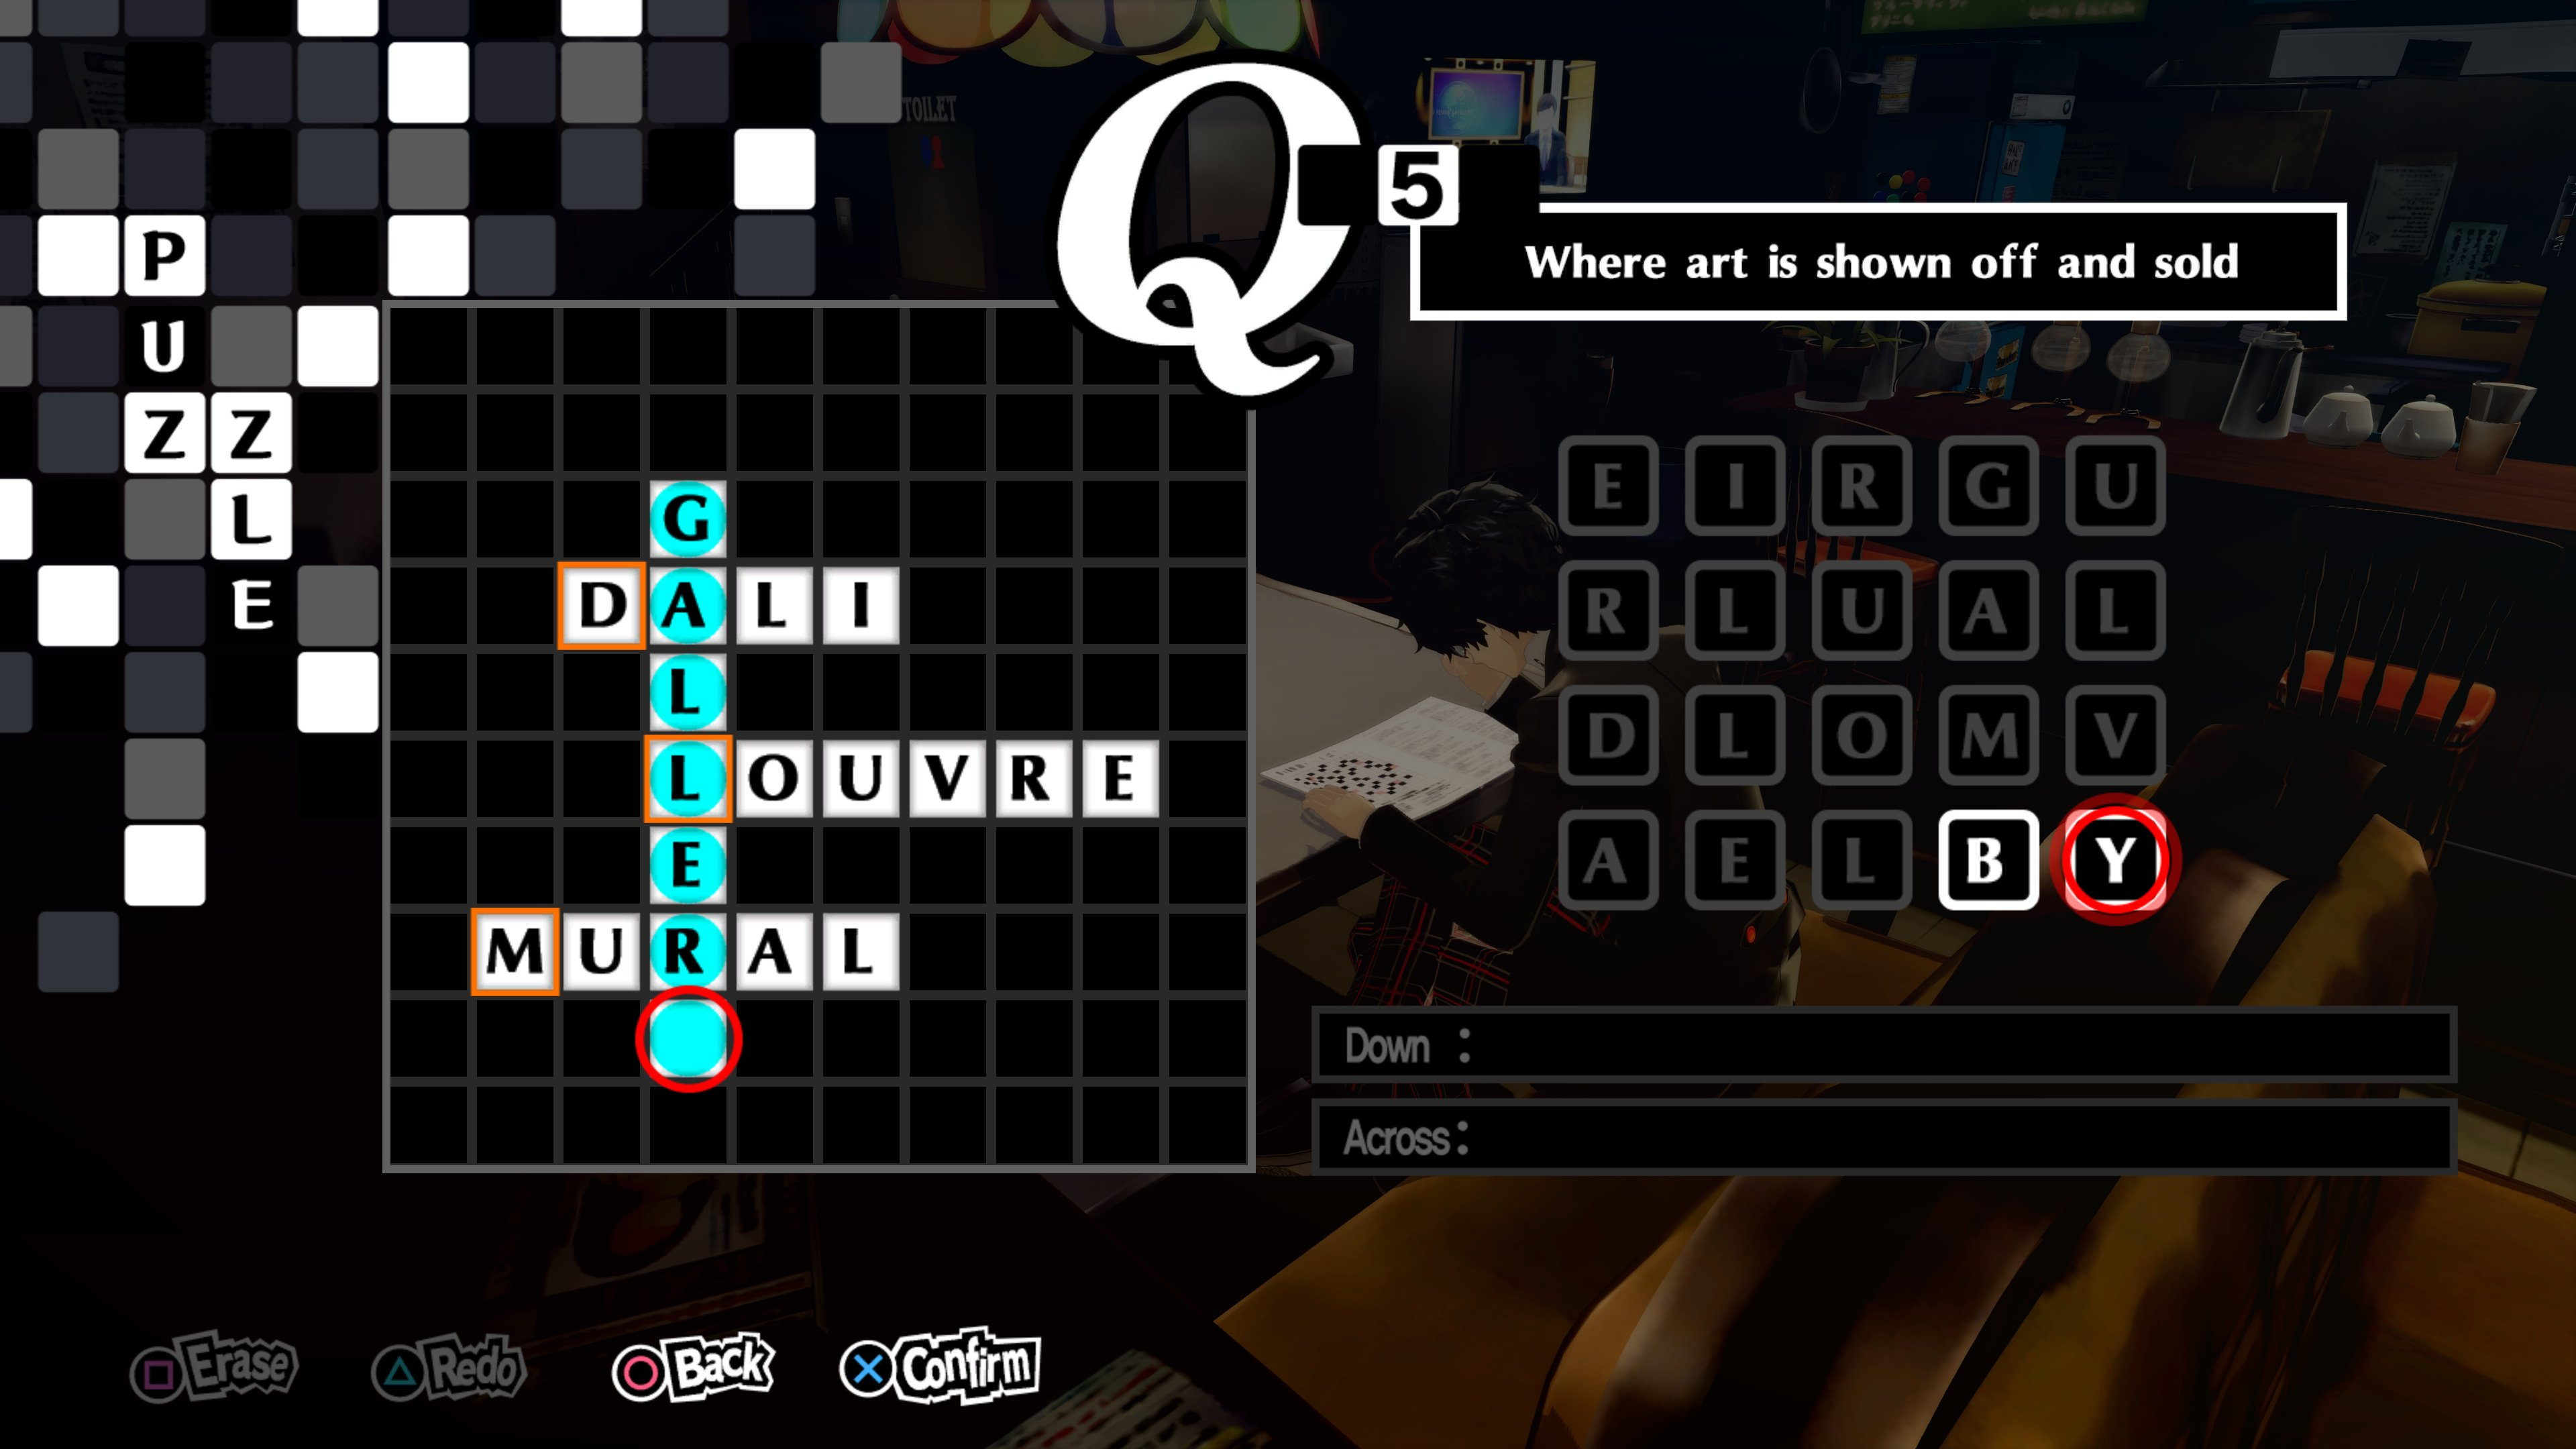 Persona 5 Royal Crossword Answers All Crossword Puzzles Solved Push Square